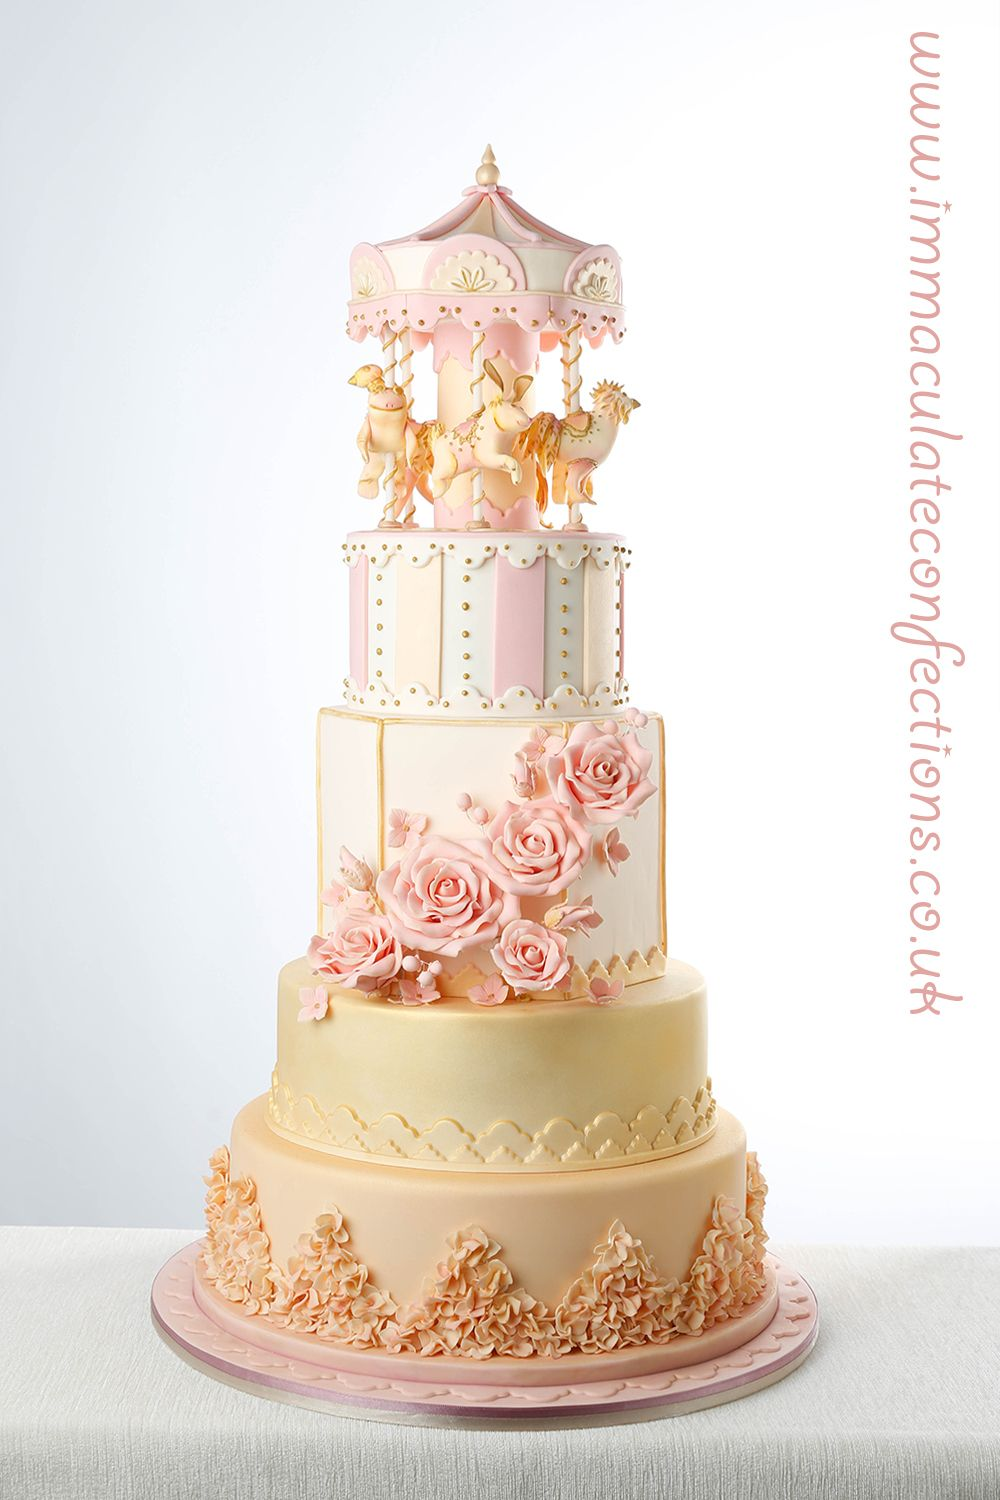 http://www.immaculateconfections.co.uk/carousel-wedding-cake/   Let ...